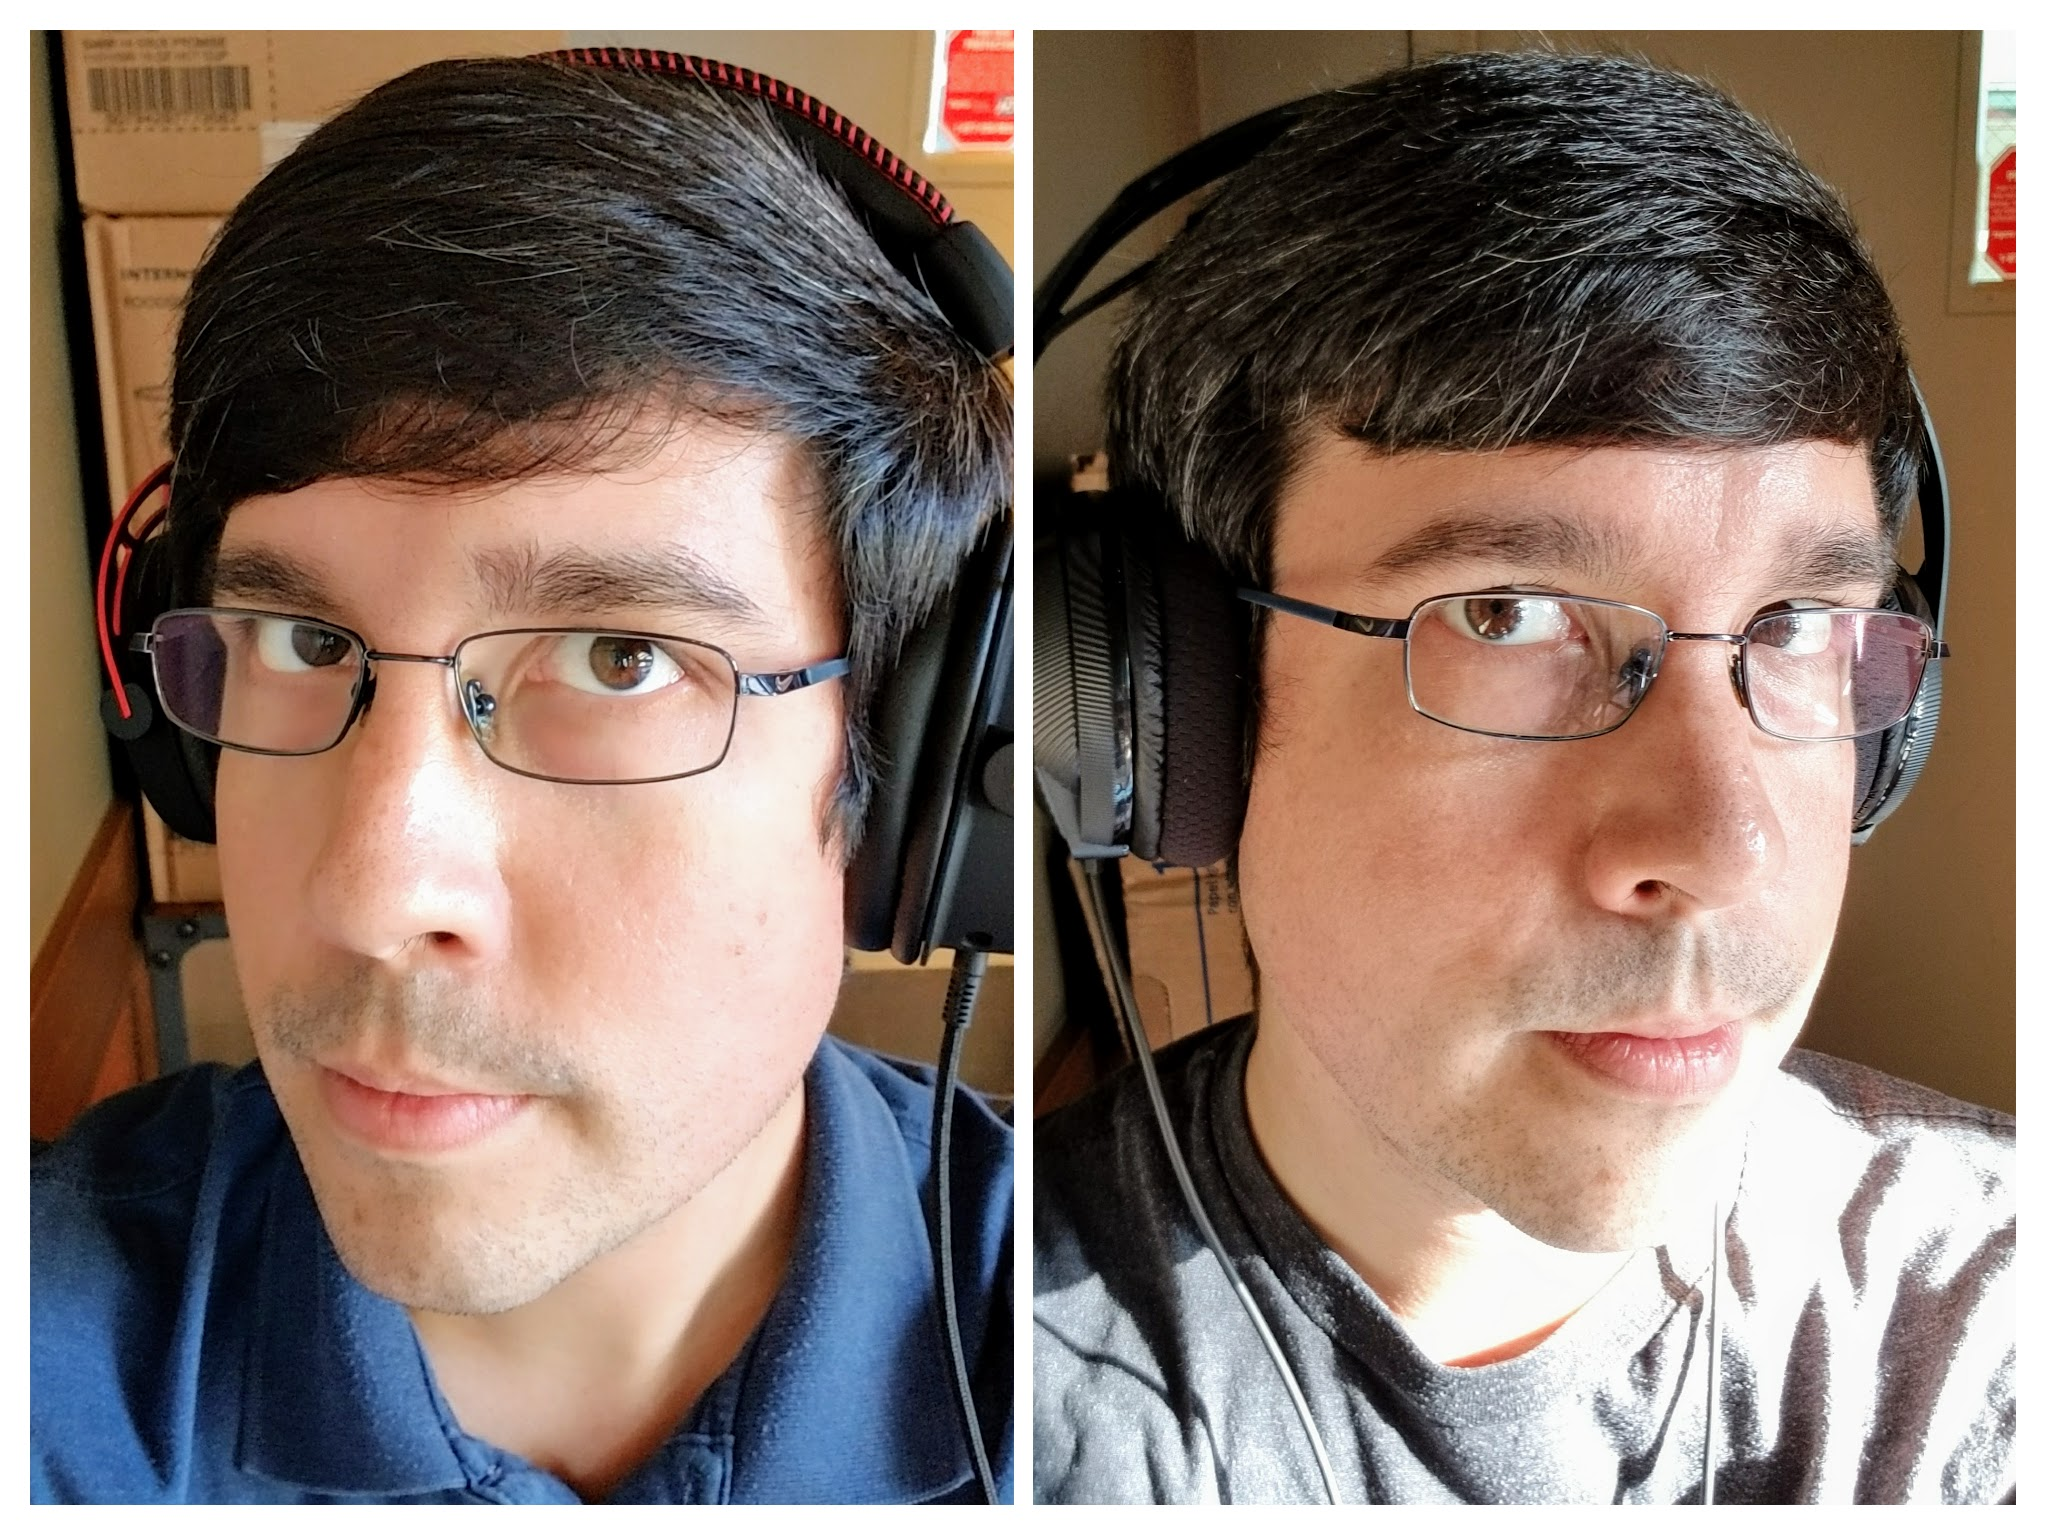 The Google Photos collage feature sort of cut the sides off of both of these photos oh well. Both headsets look decent on the head, even though the RIG 400 is a bit angular in the hands.